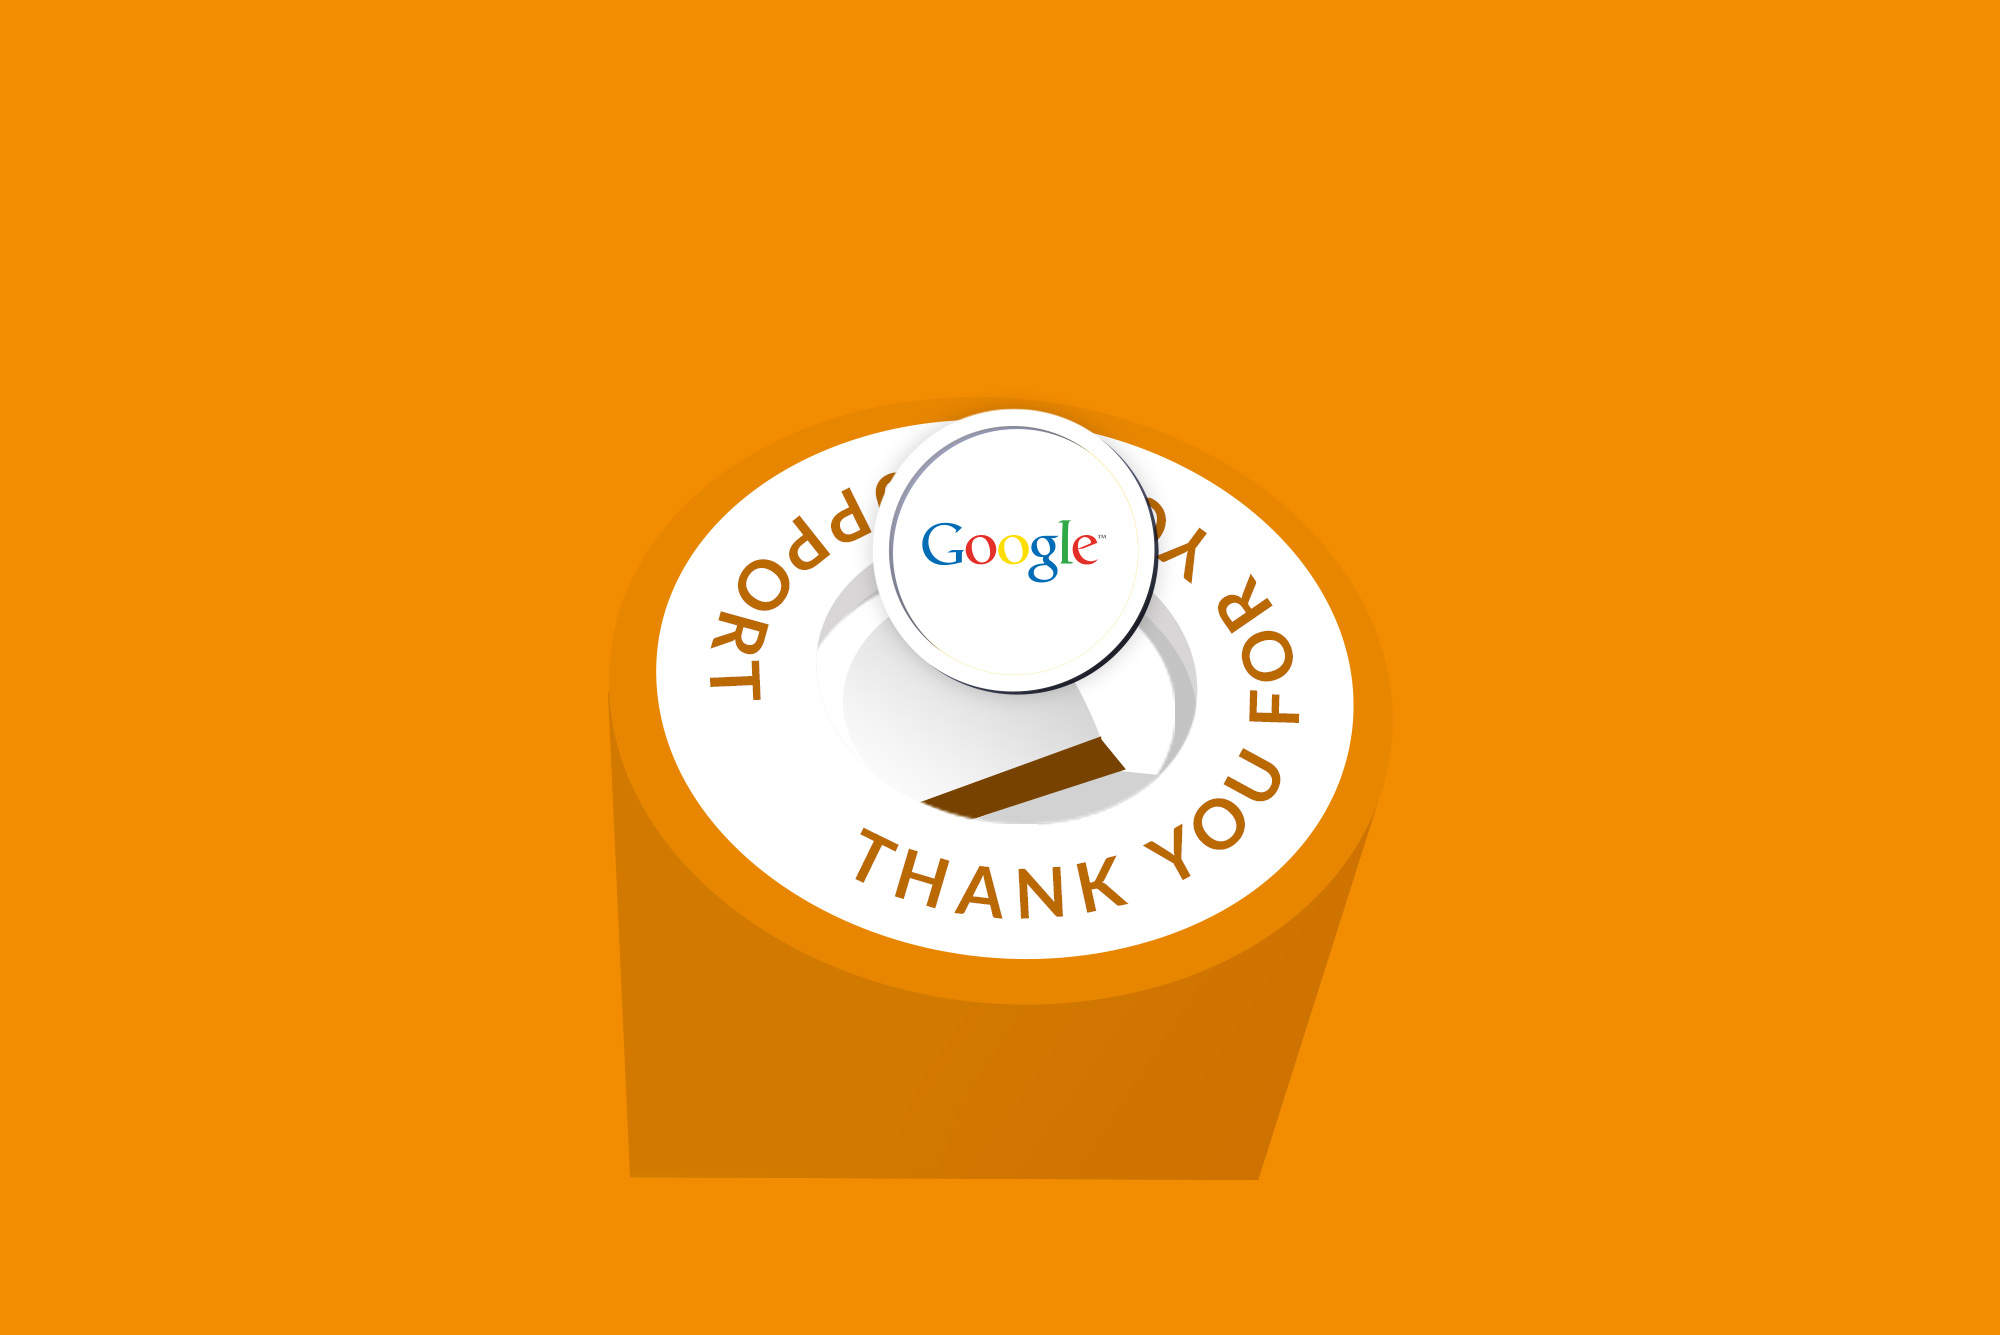 Google coin into a charity box on orange background - free ads for charities